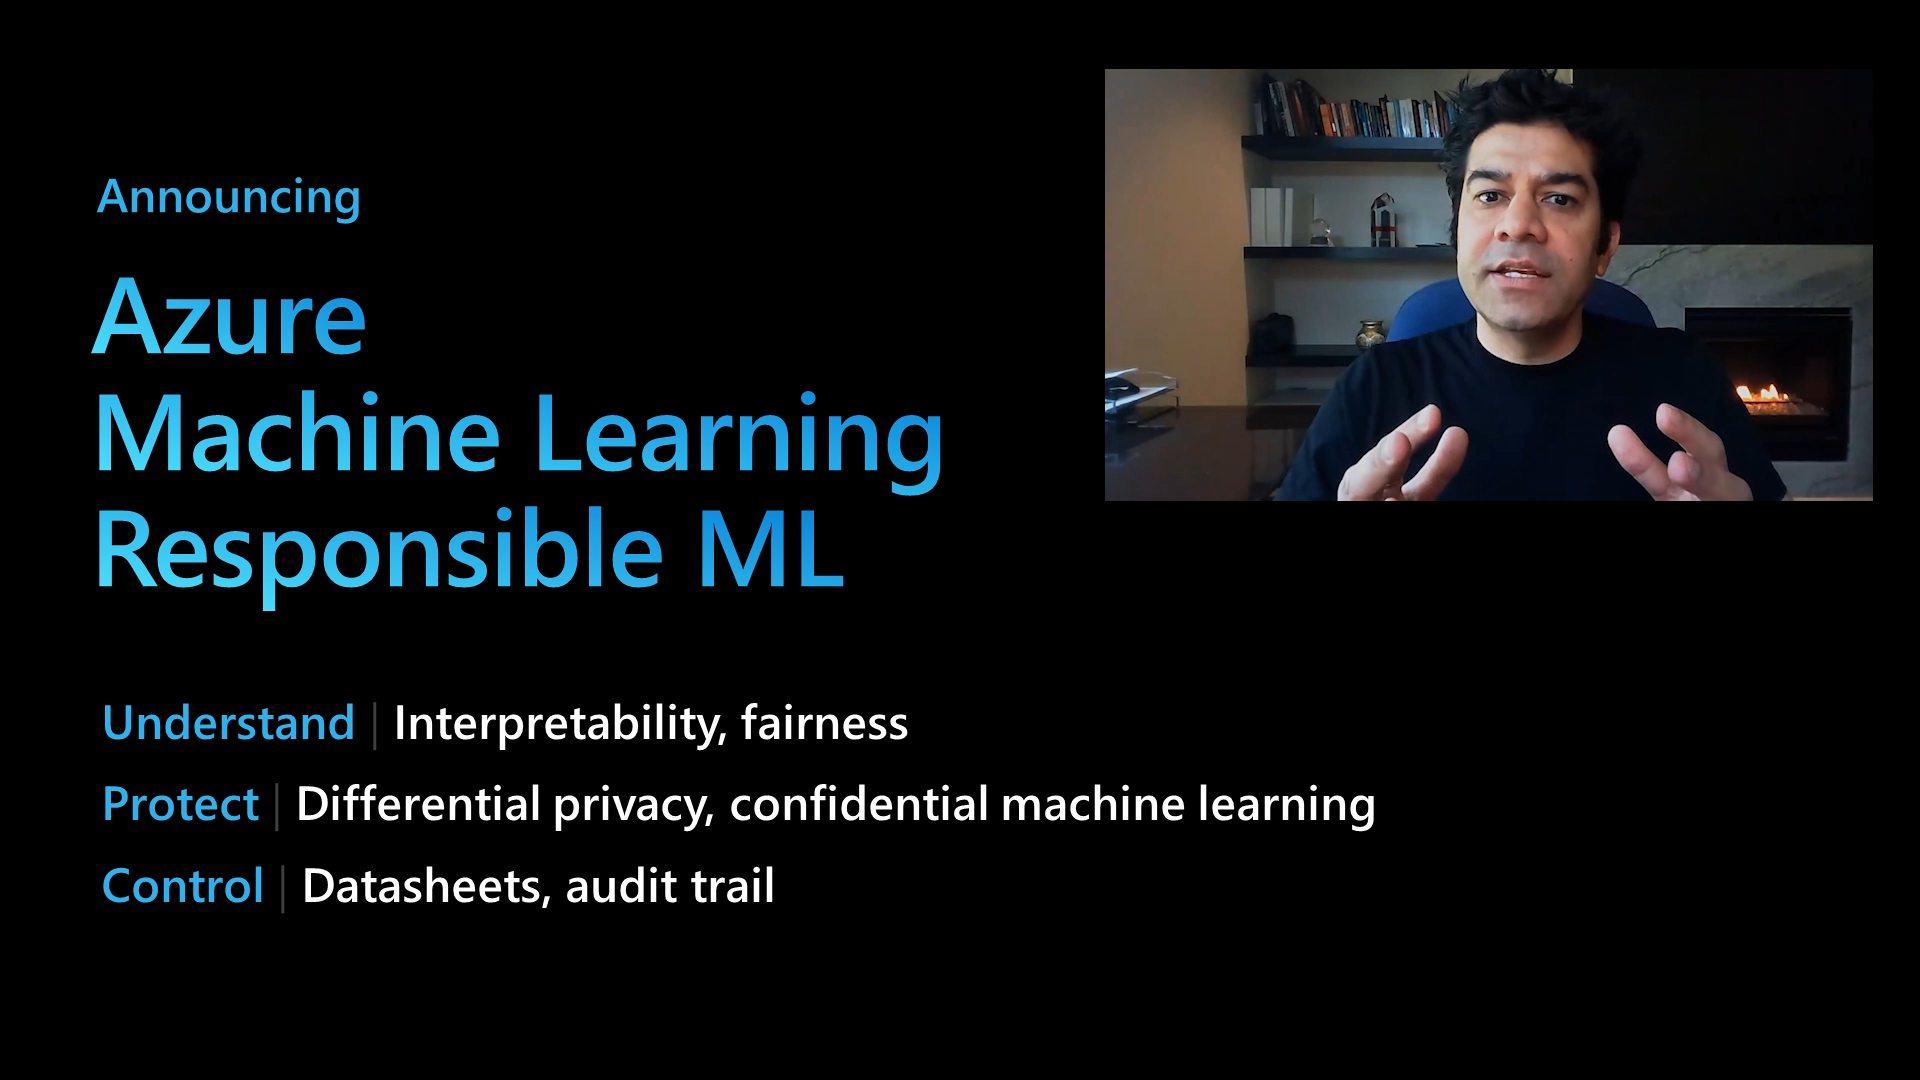 Build 2020 Responsible ML Overview